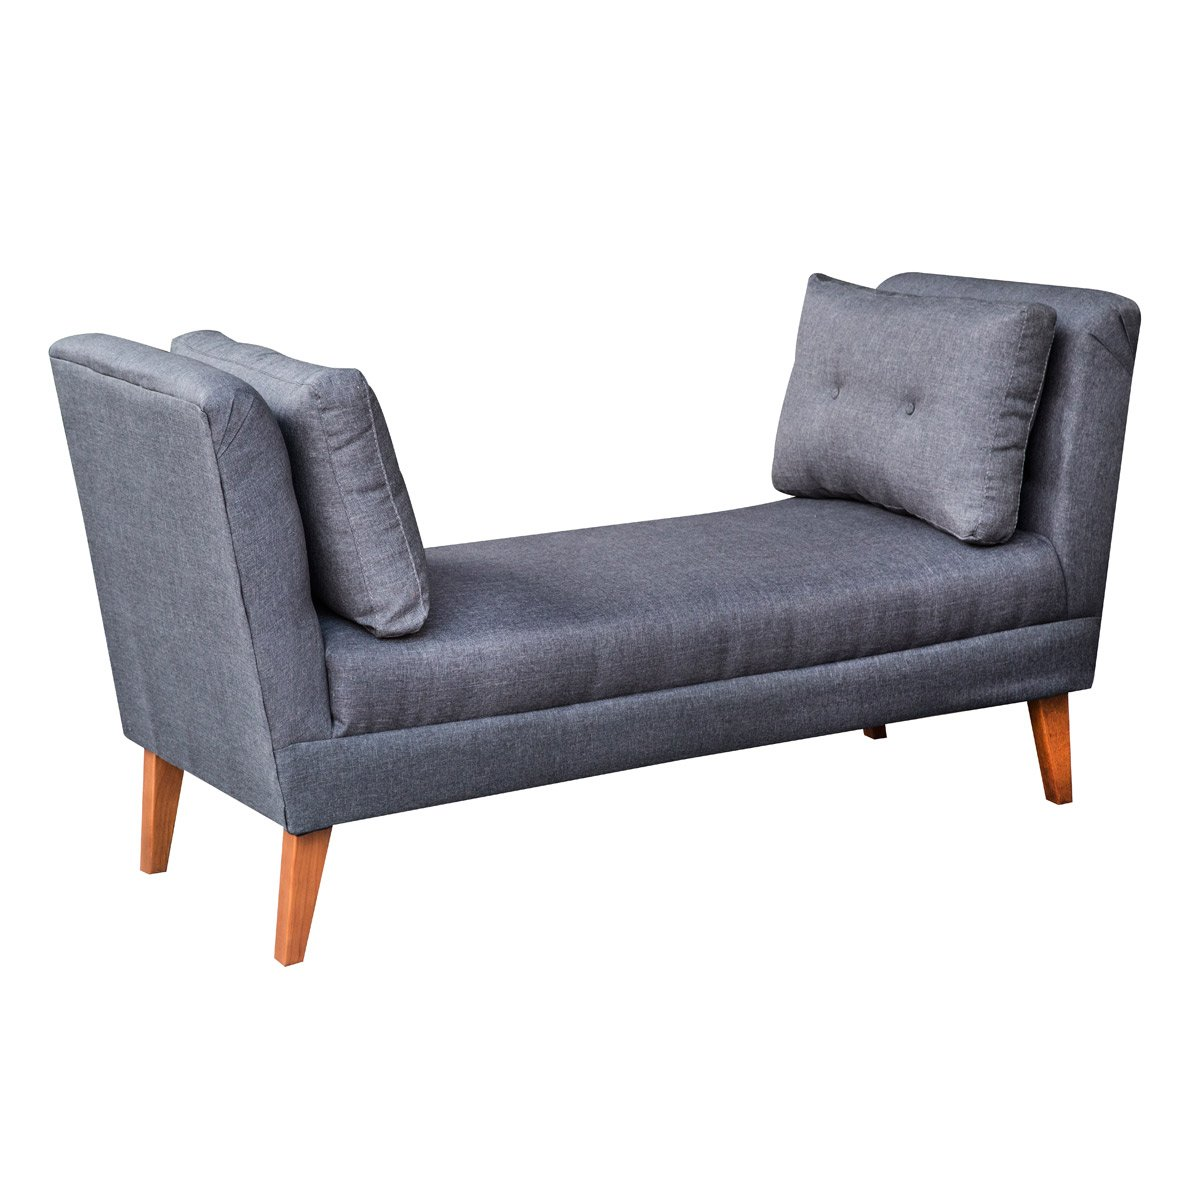 Sill n argenis gris sears com mx me entiende for Sillon gris